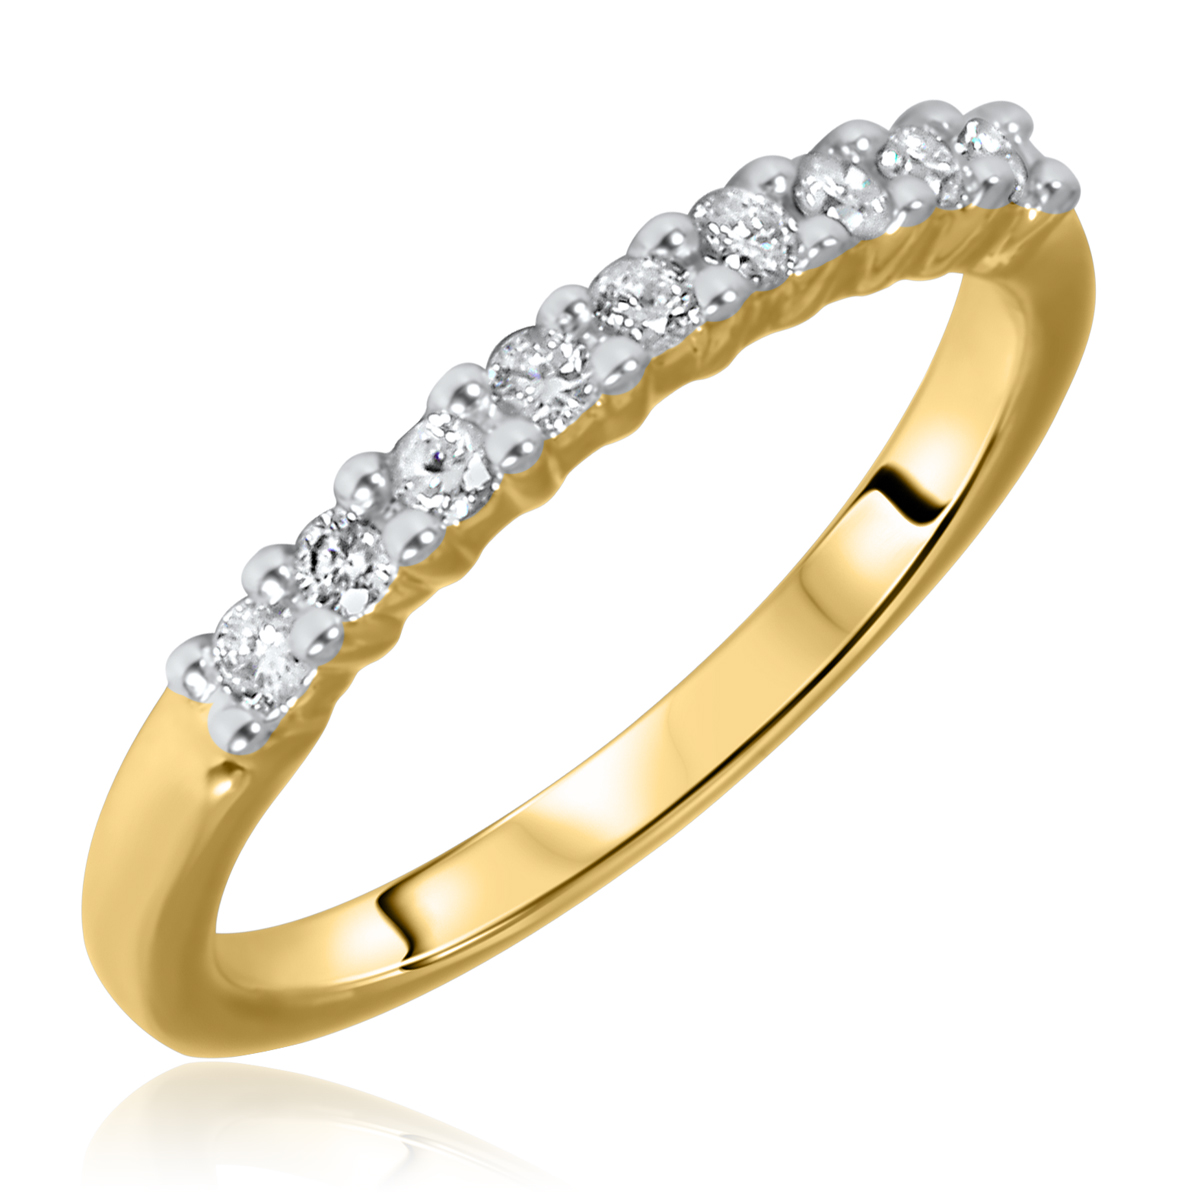 1/4 Carat T.W. Round Cut 9 Stone Diamond Anniversary Ladies Band 14K Yellow